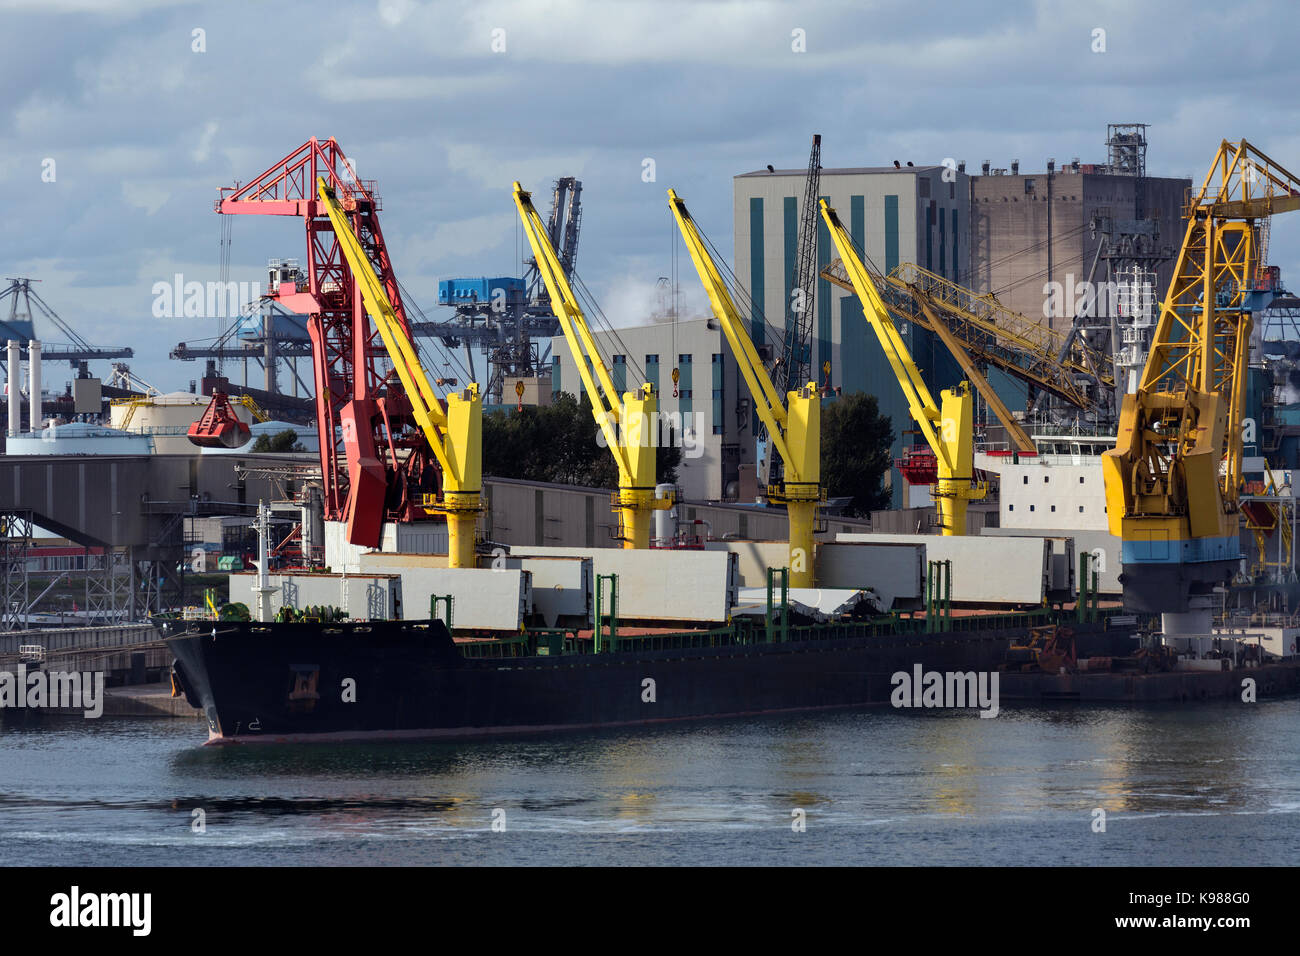 A ship being unloaded in the Port of Rotterdam in the Netherlands. - Stock Image